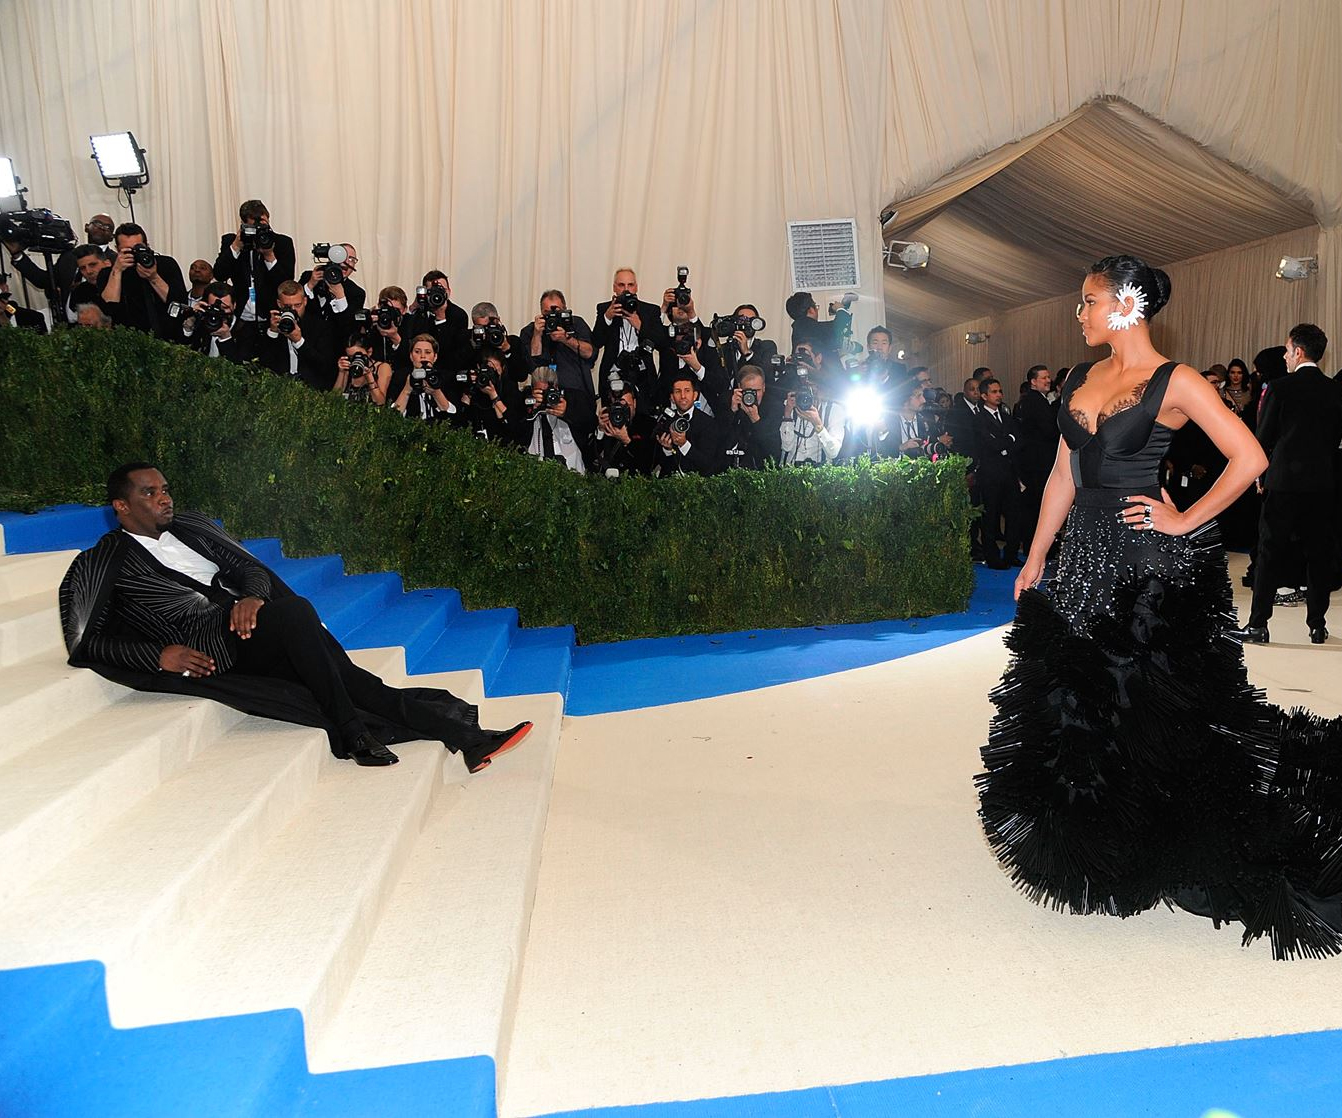 Diddy Crops Kylie and Kendall Jenner Out of Met Gala Instagram Photo